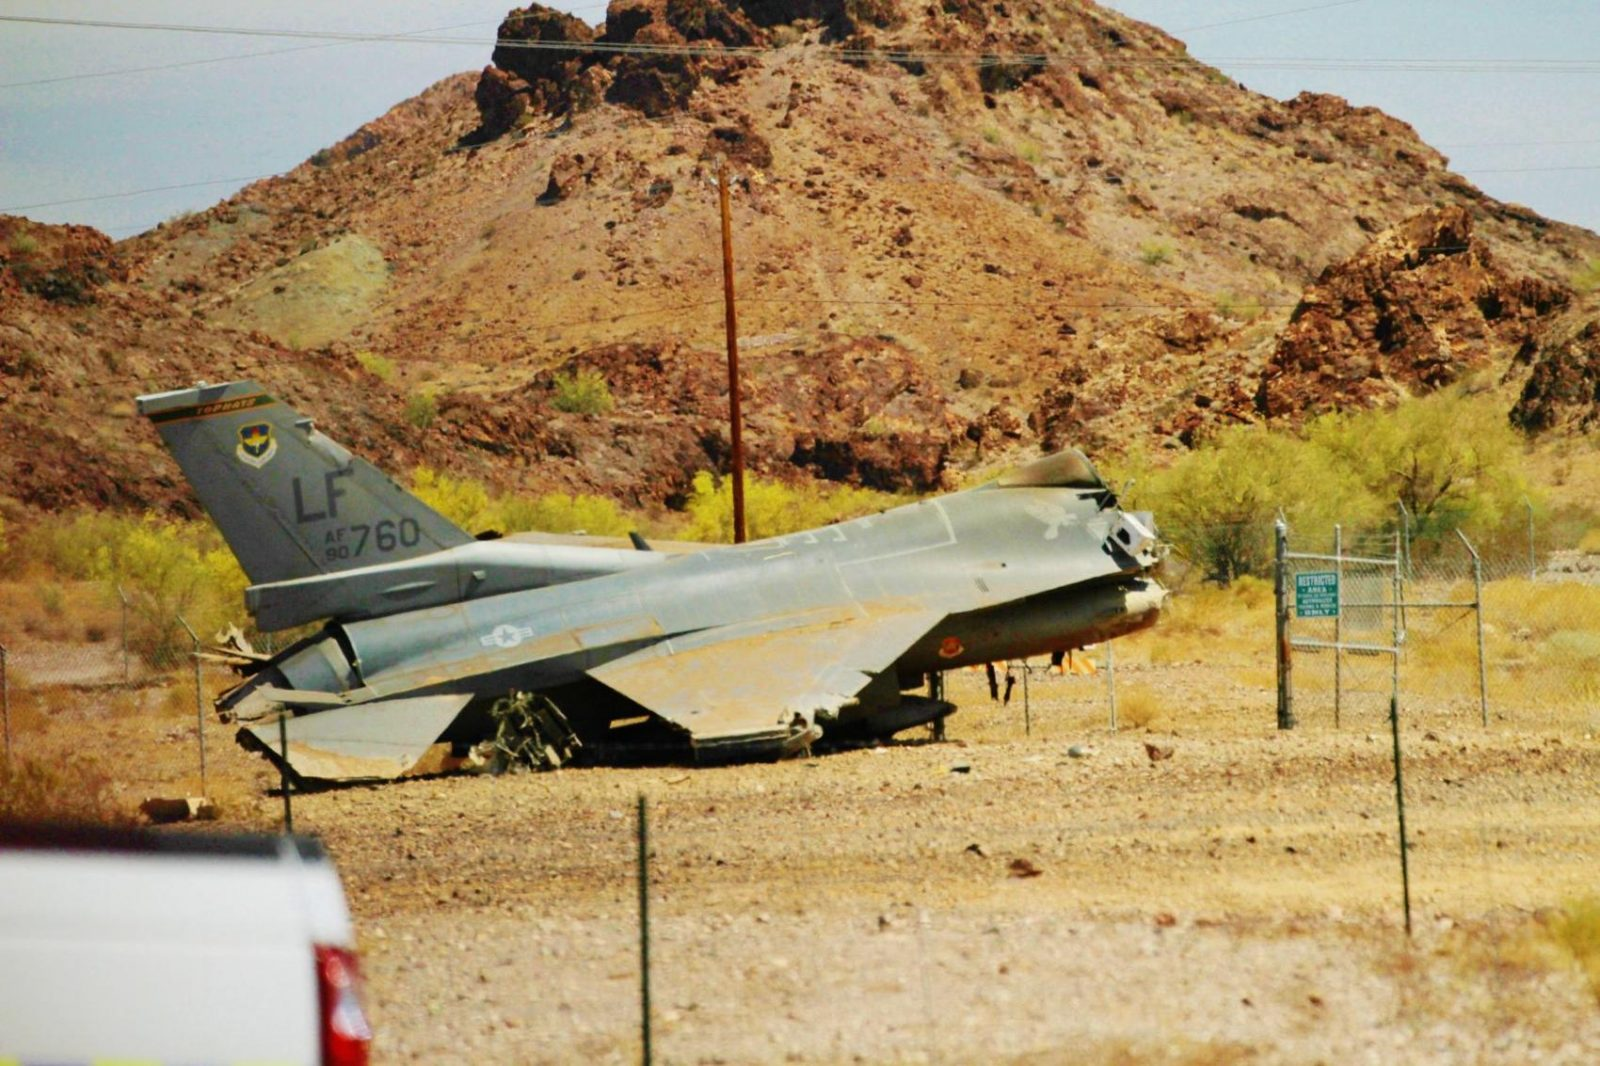 Pilot dies after military contract aircraft crashes in